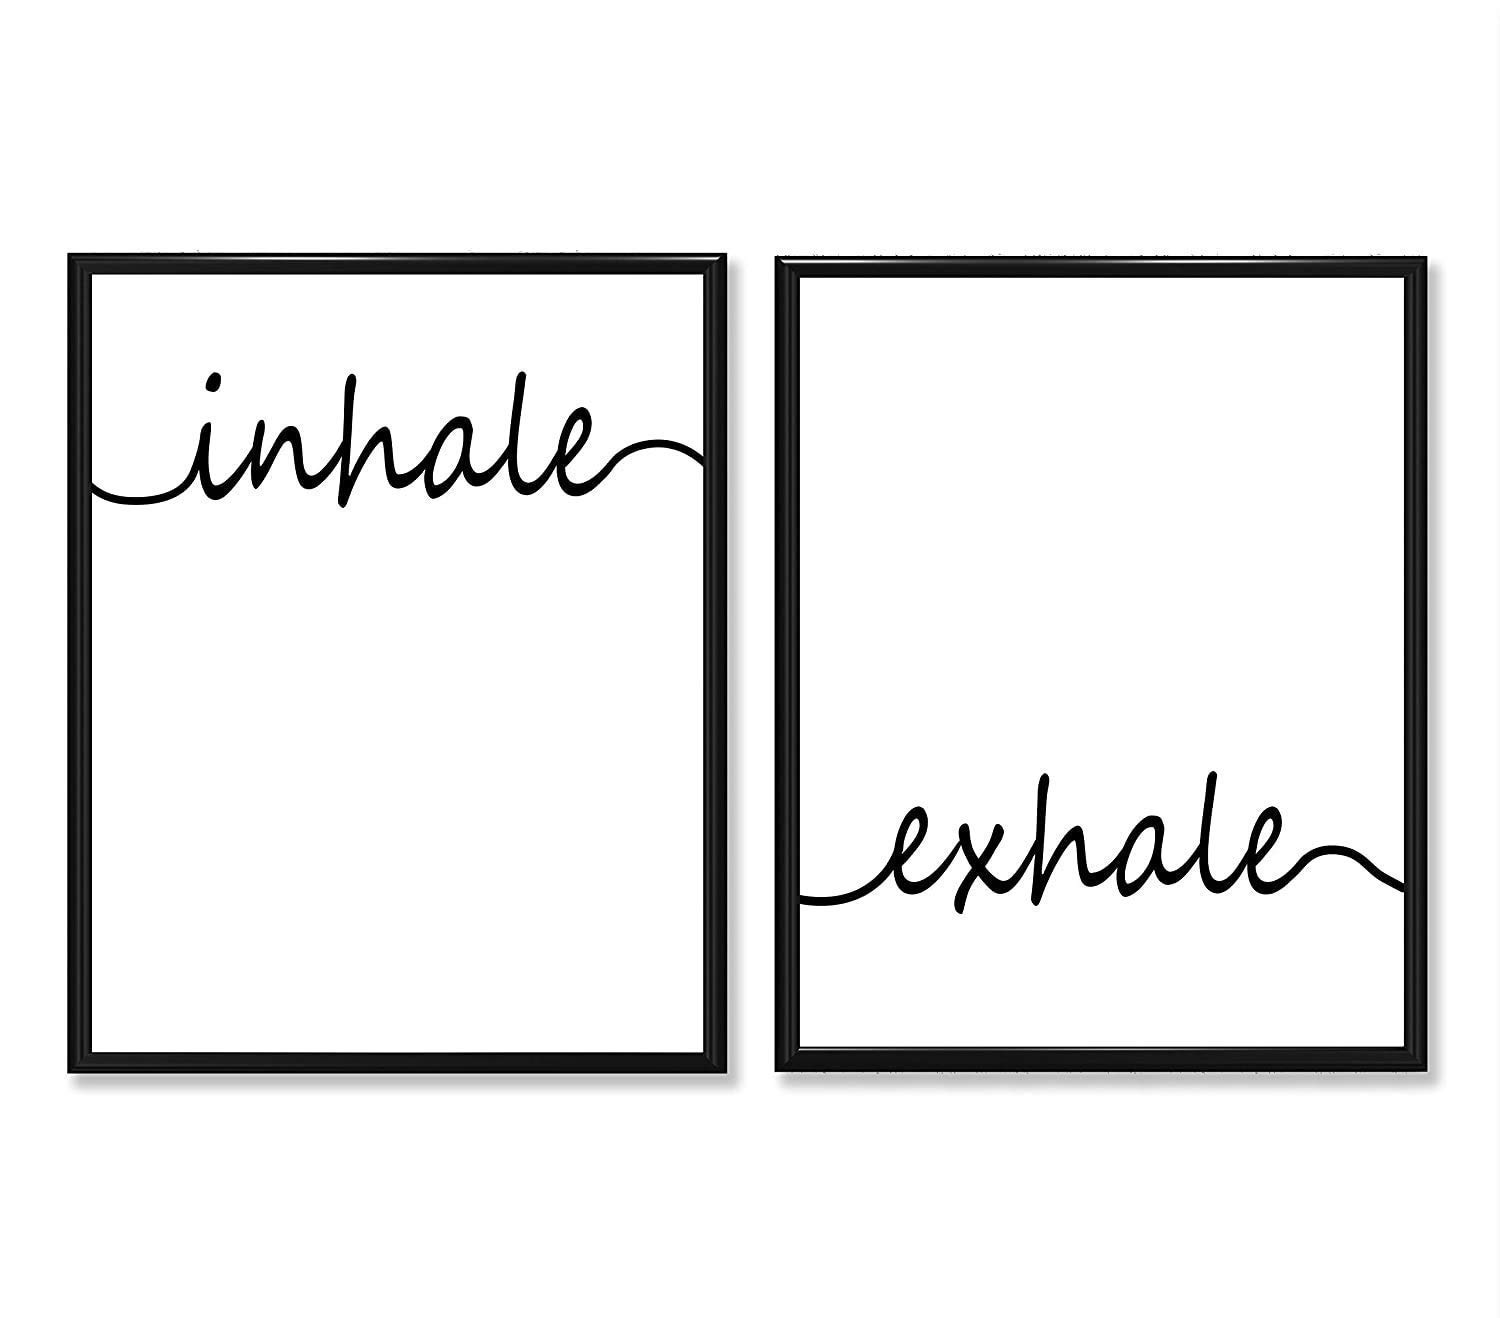 Inhale Exhale - Set of Two 11x14 Unframed Prints - Great Bathroom, Bedroom, Yoga Studio and Gym Decor and Gift Under $20